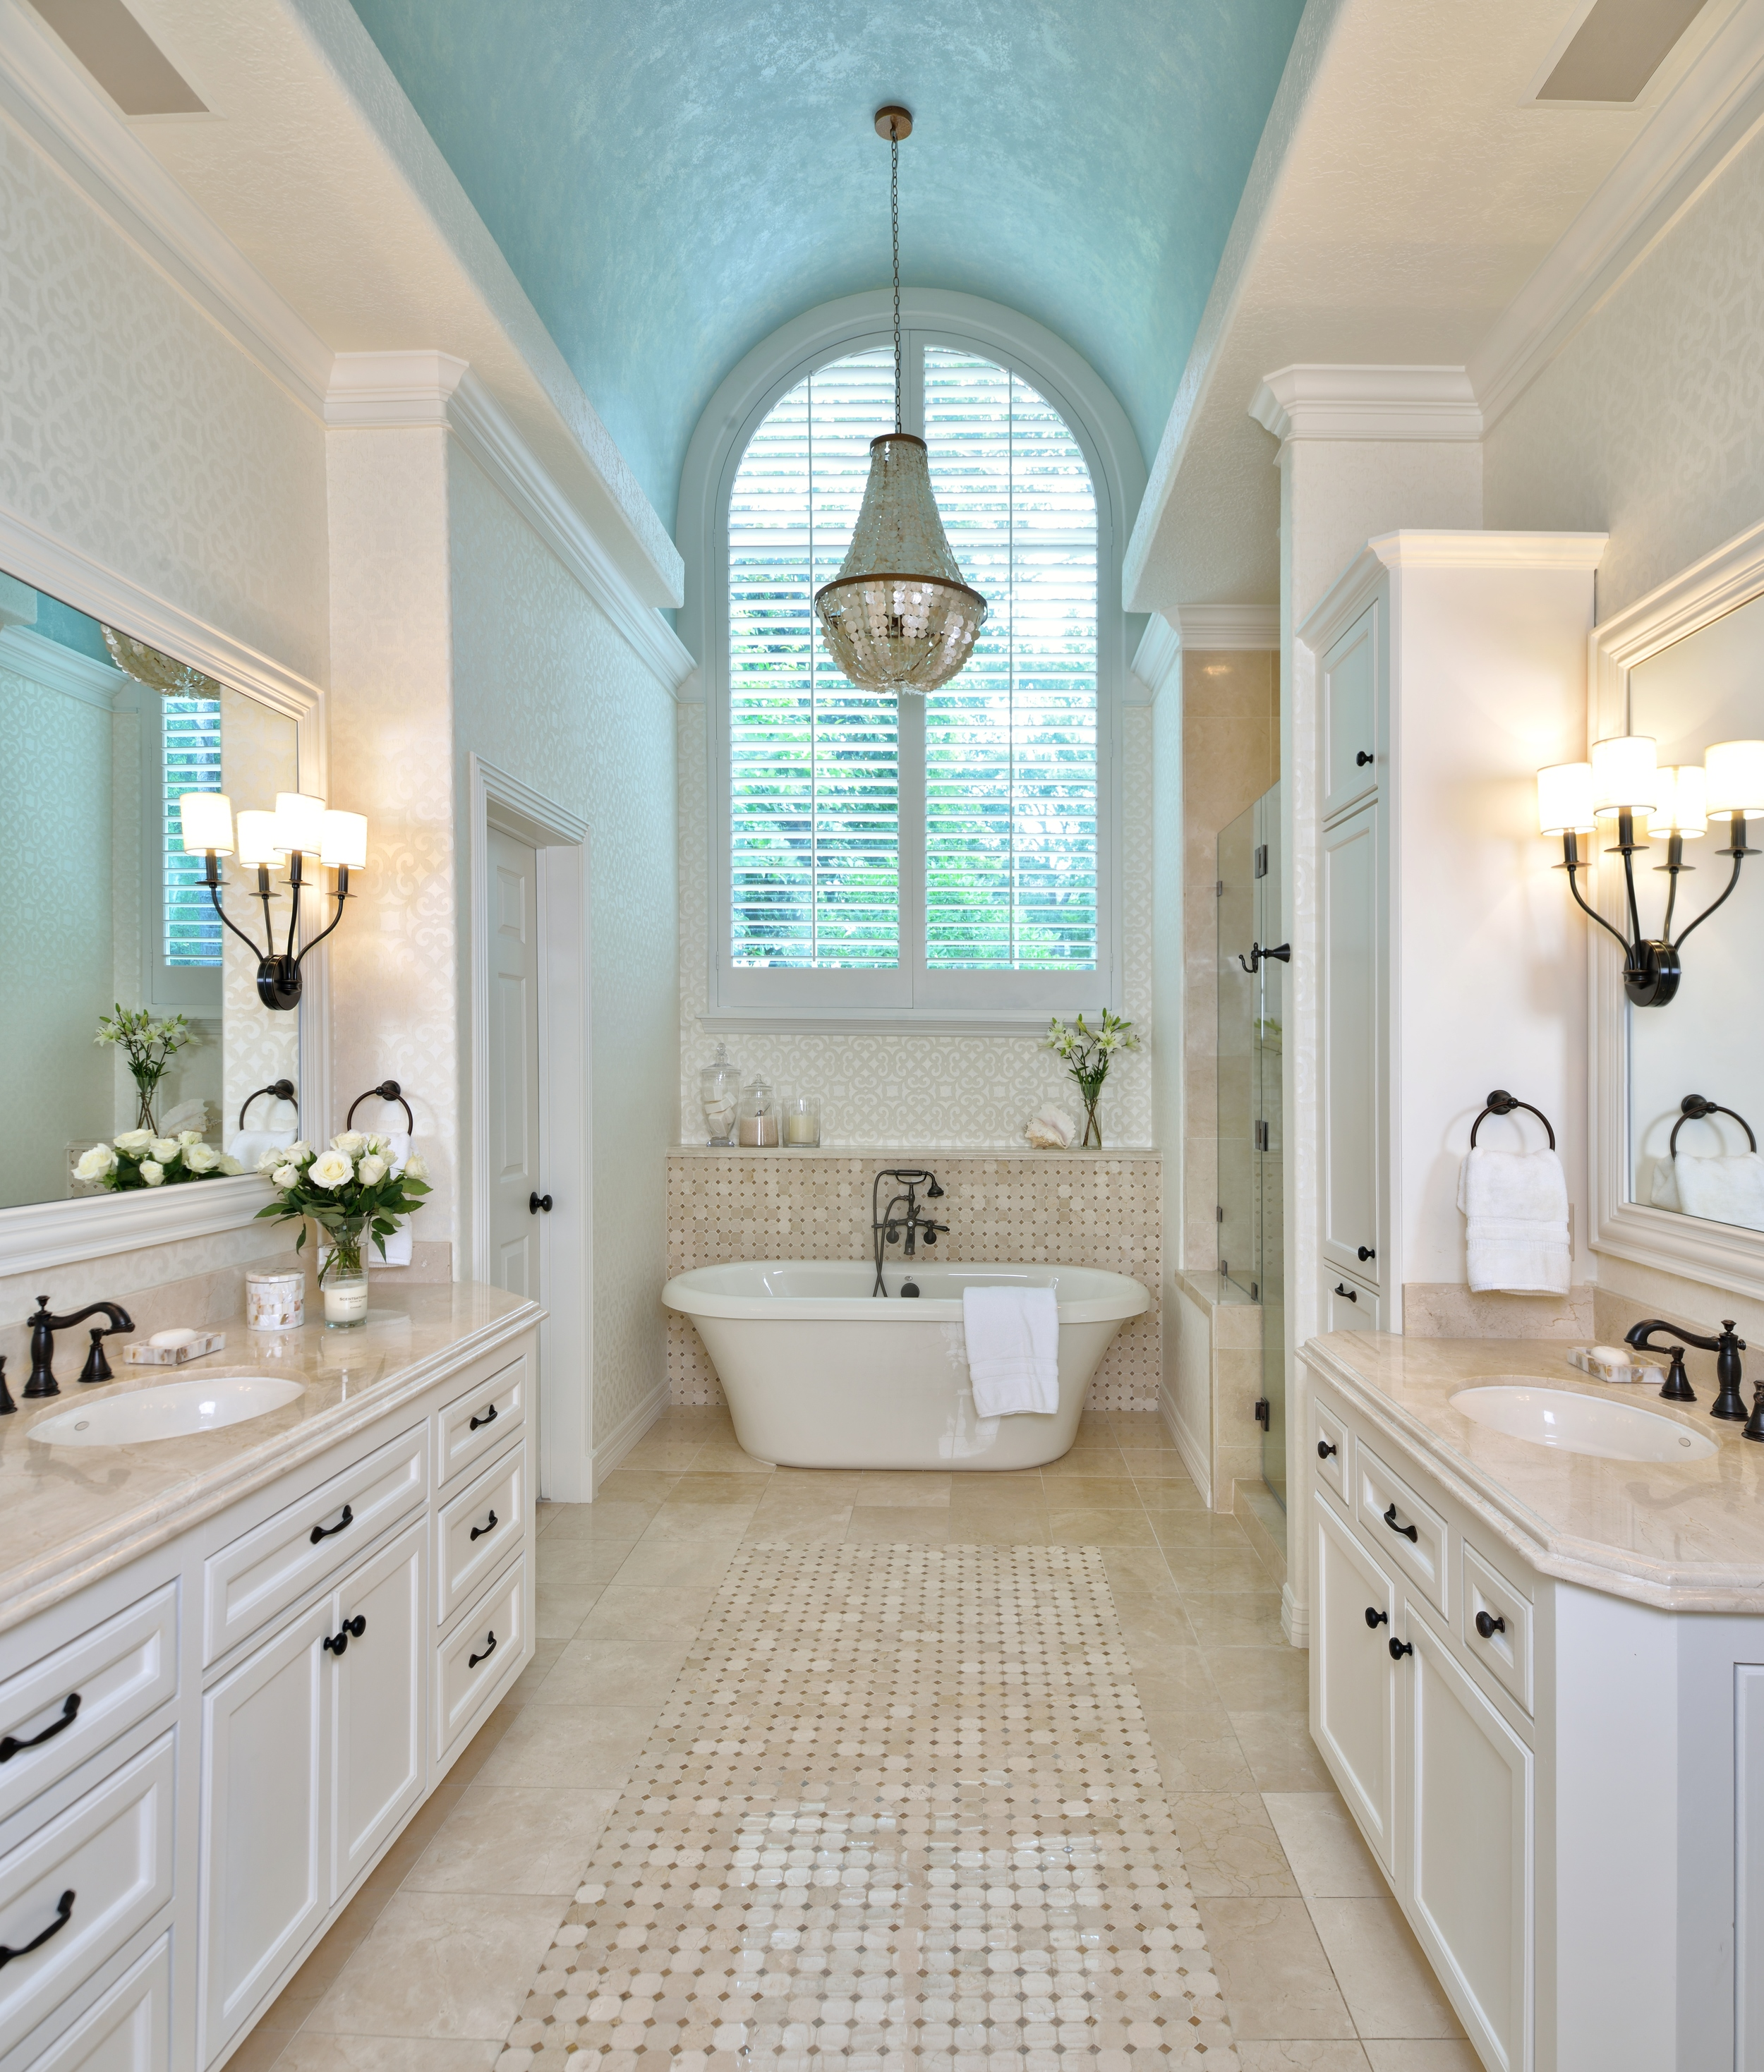 Planning A Bathroom Remodel? Consider The Layout First — DESIGNED